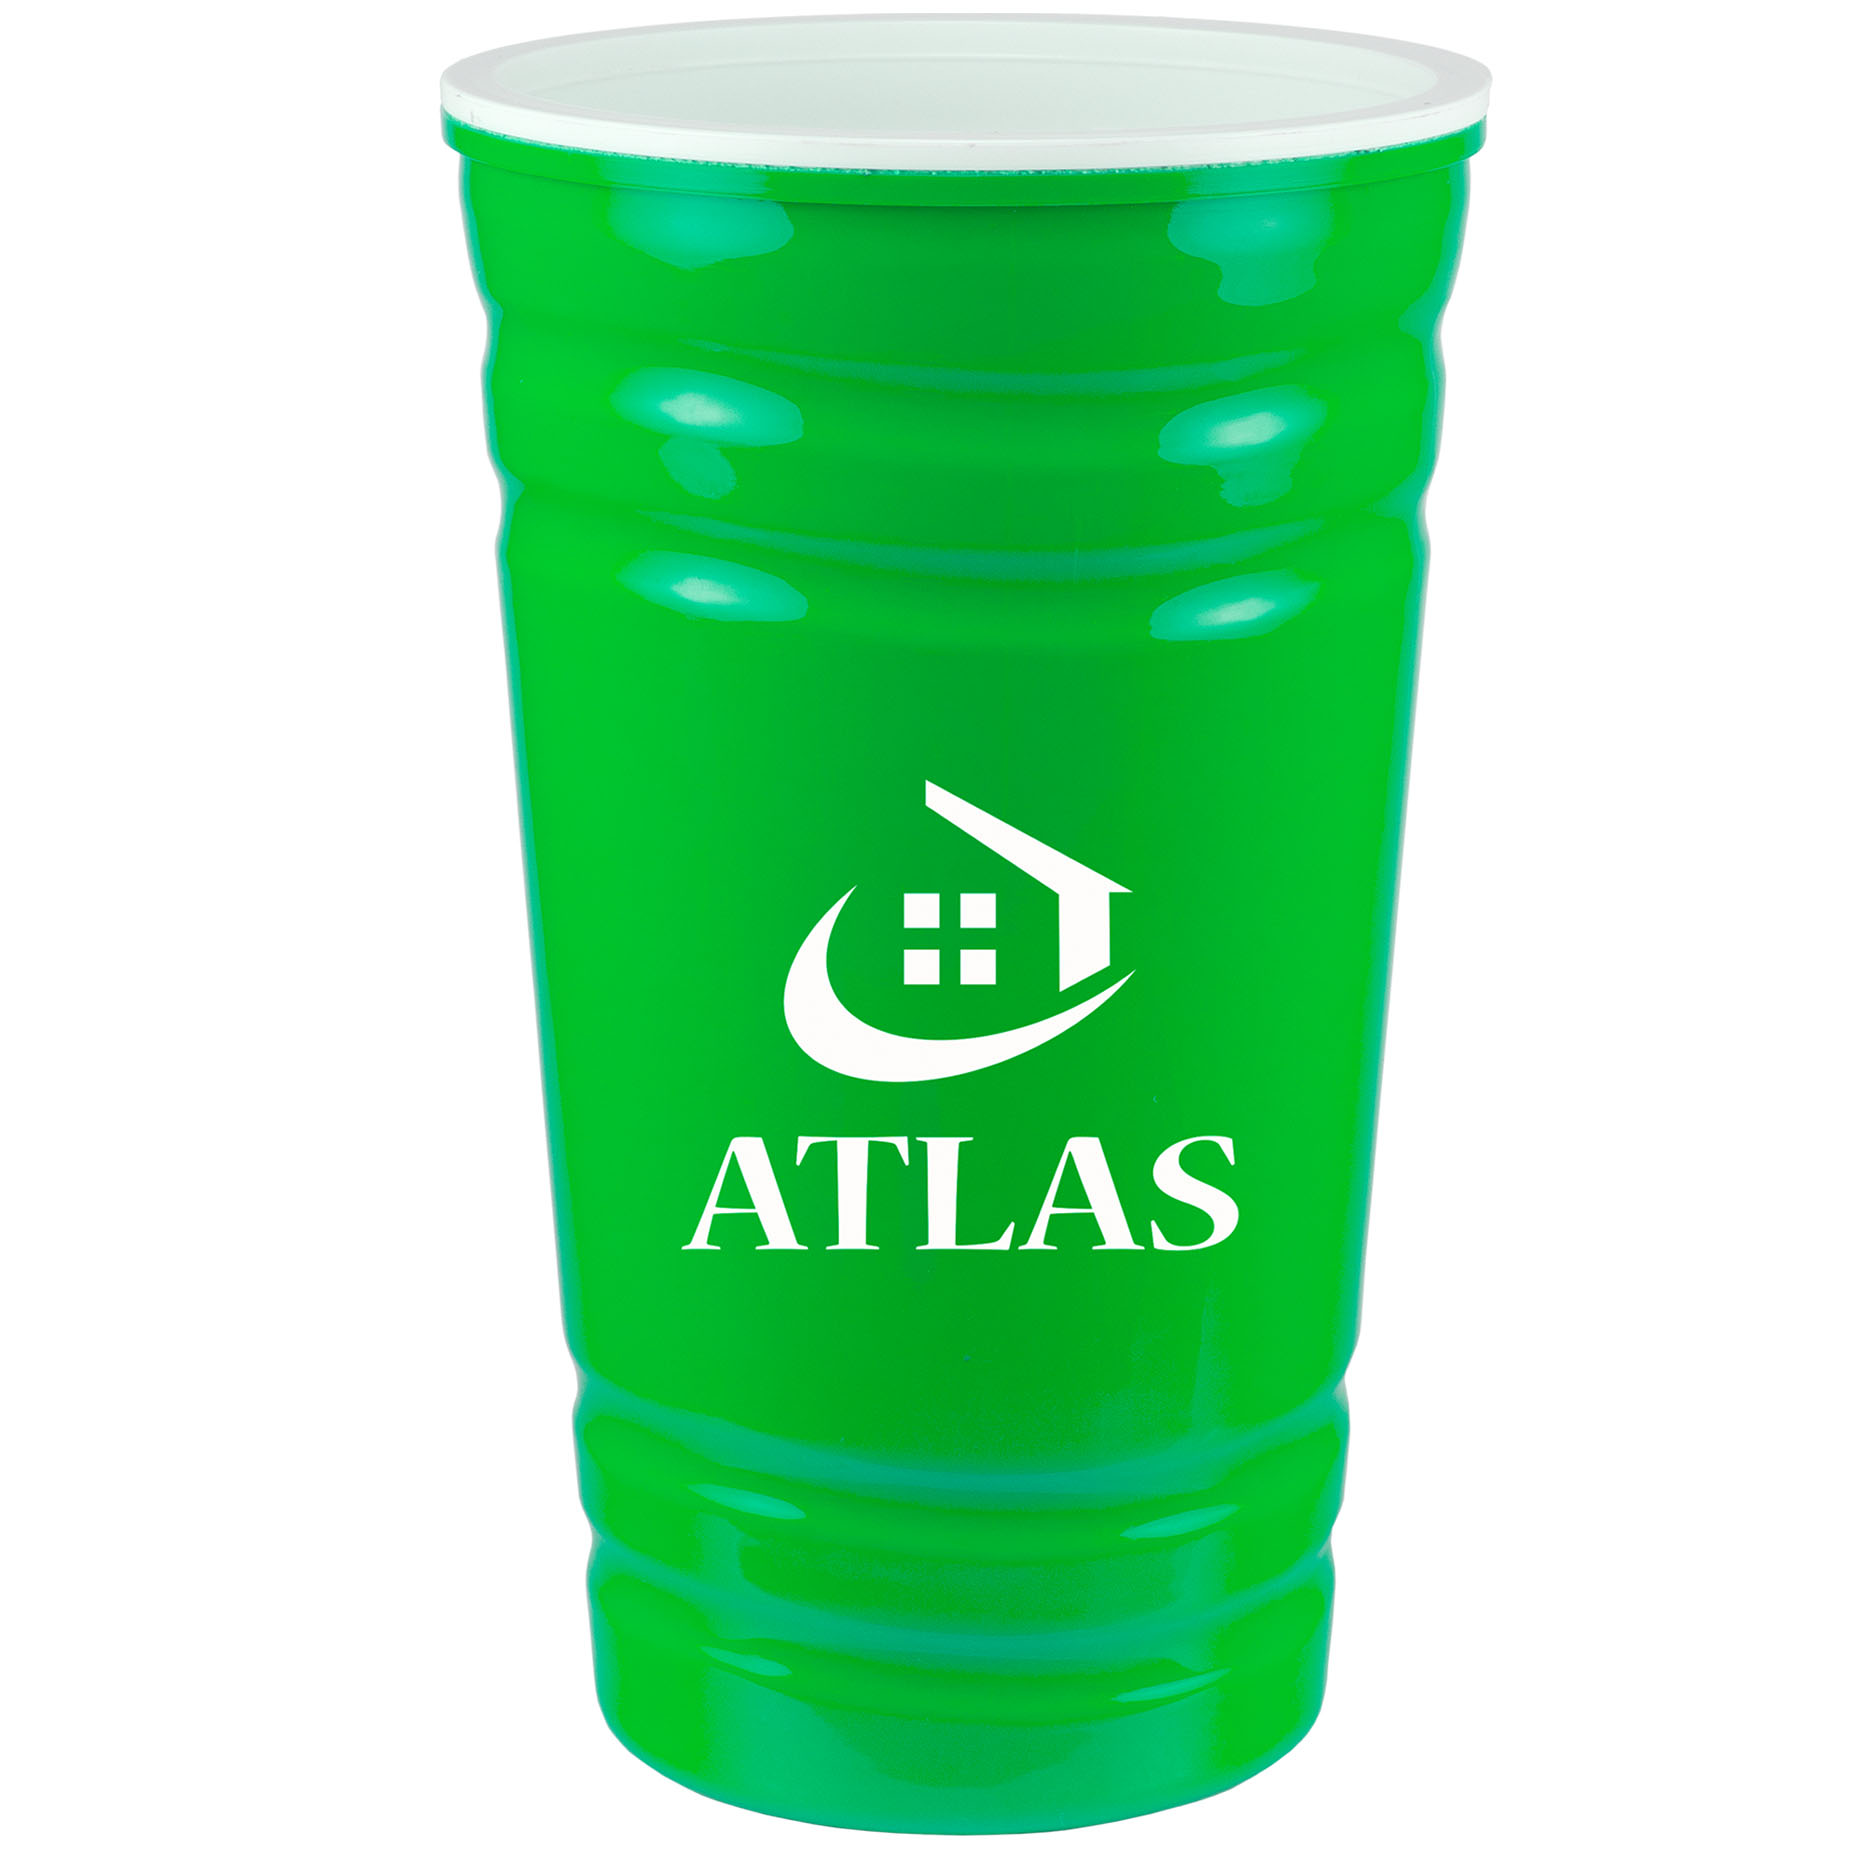 16 Oz. Fiesta Cup, 467-K, One Colour Imprint